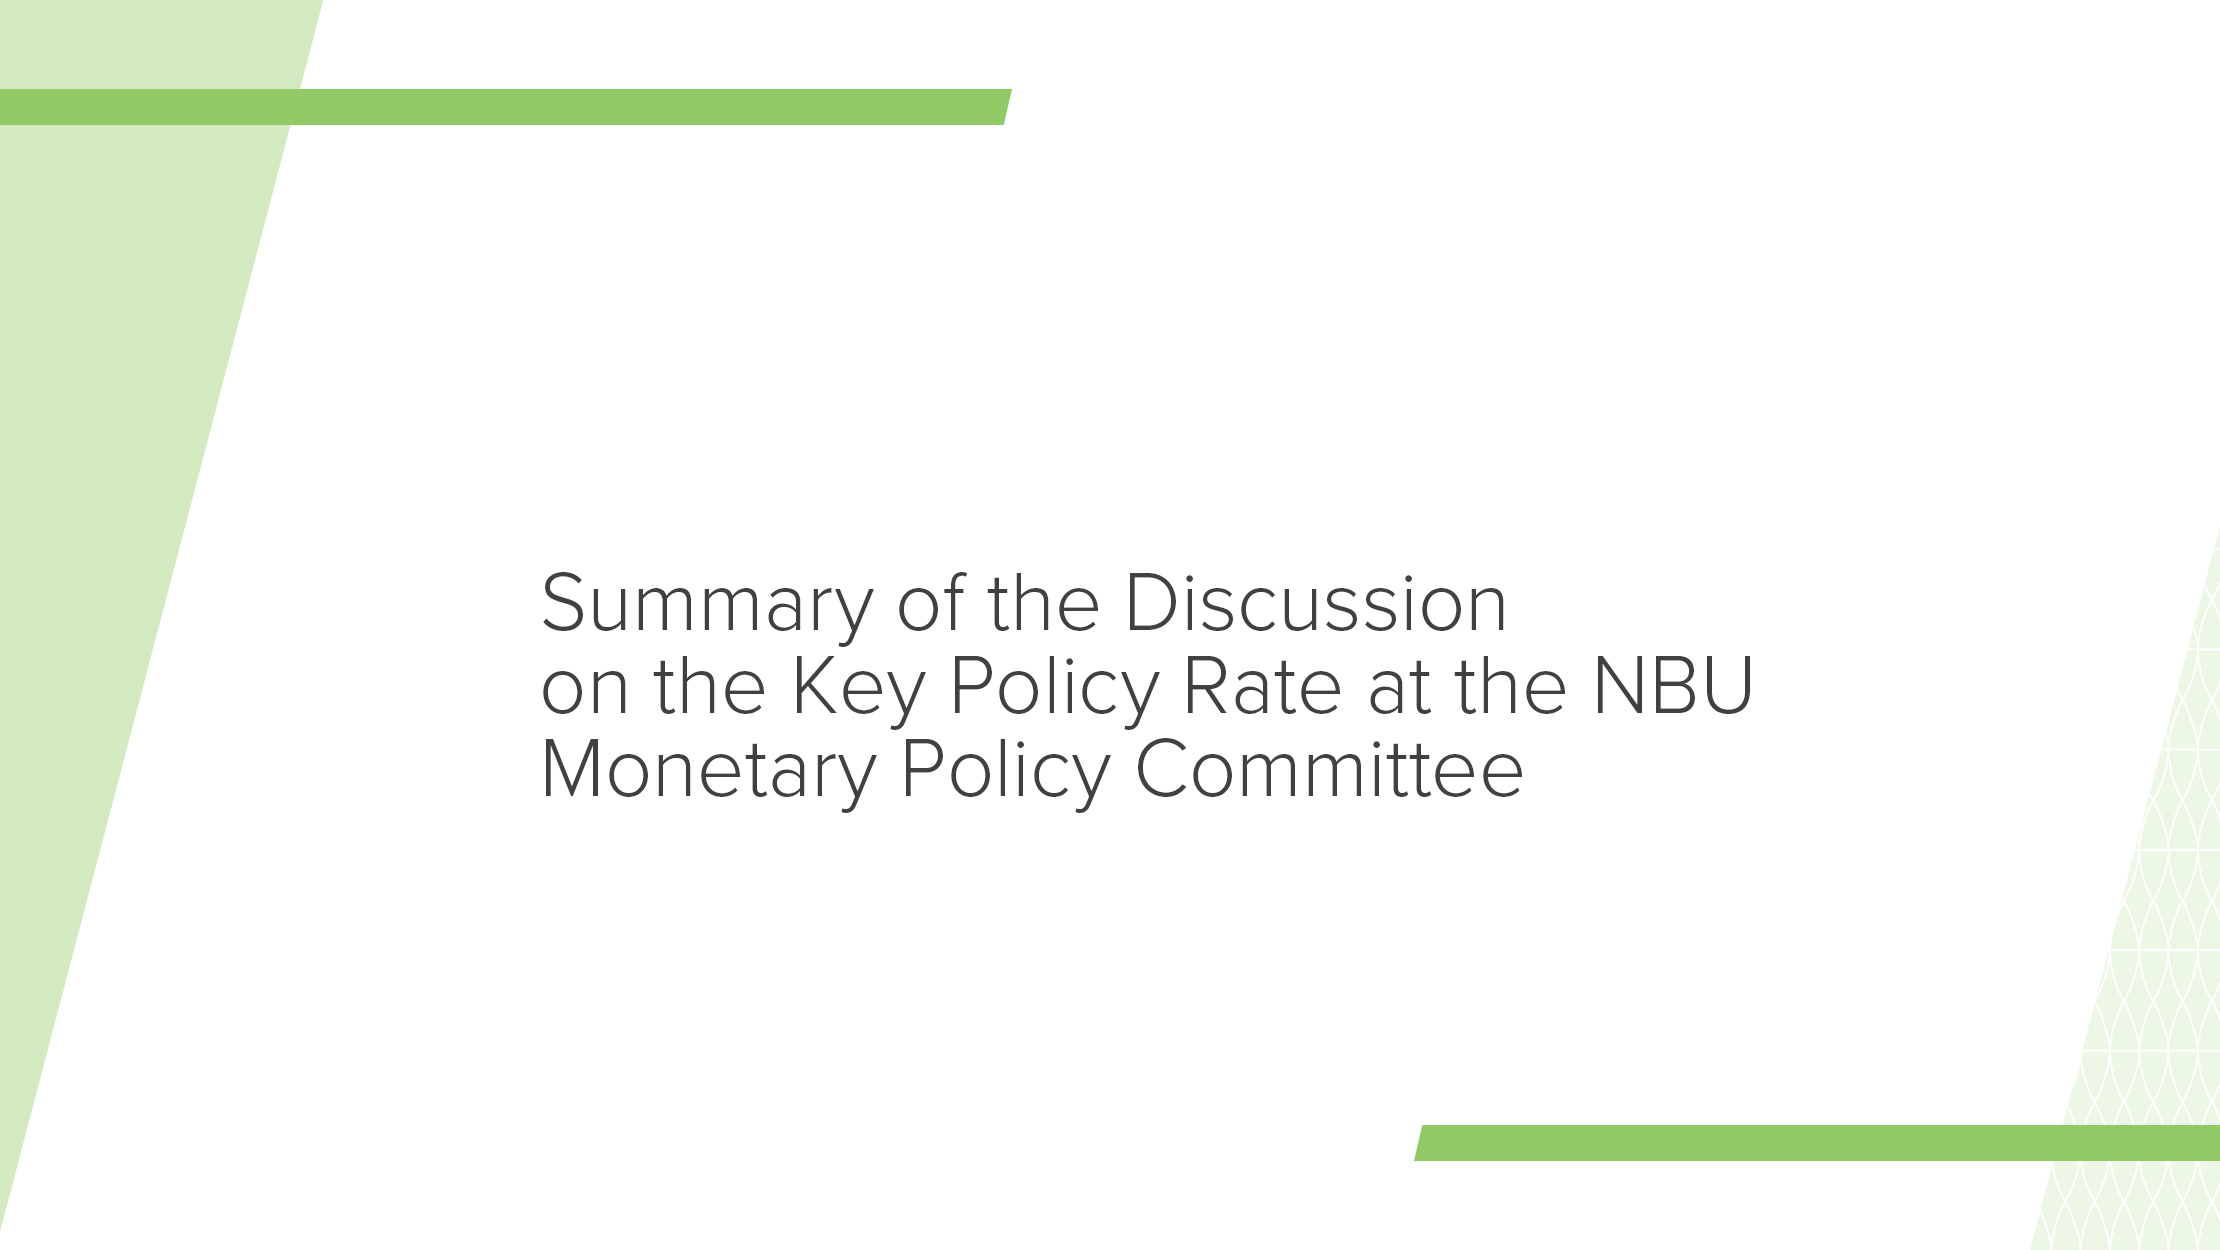 Summary of the Key Policy Rate Discussion by the NBU Monetary Policy Committee